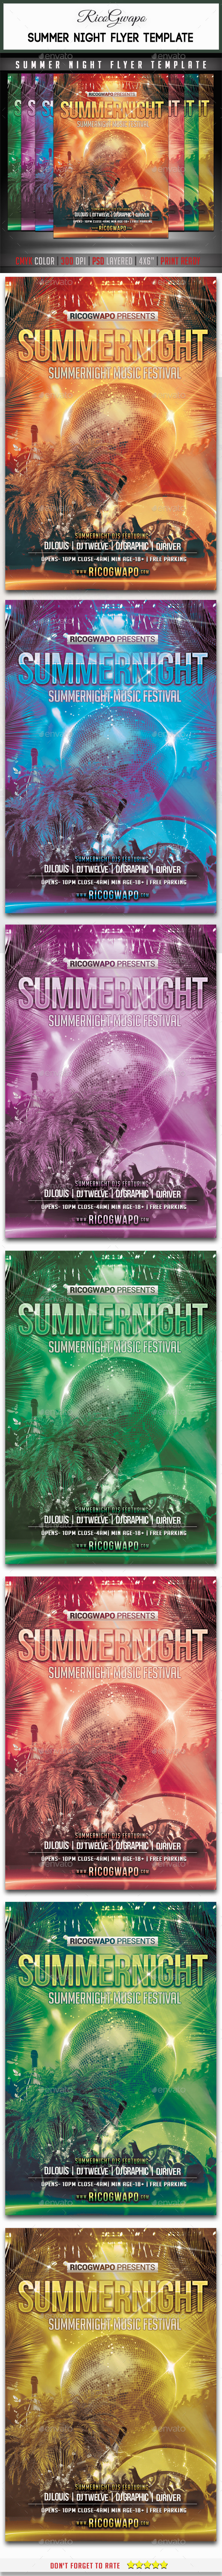 GraphicRiver Summer Night Flyer Template 11773124